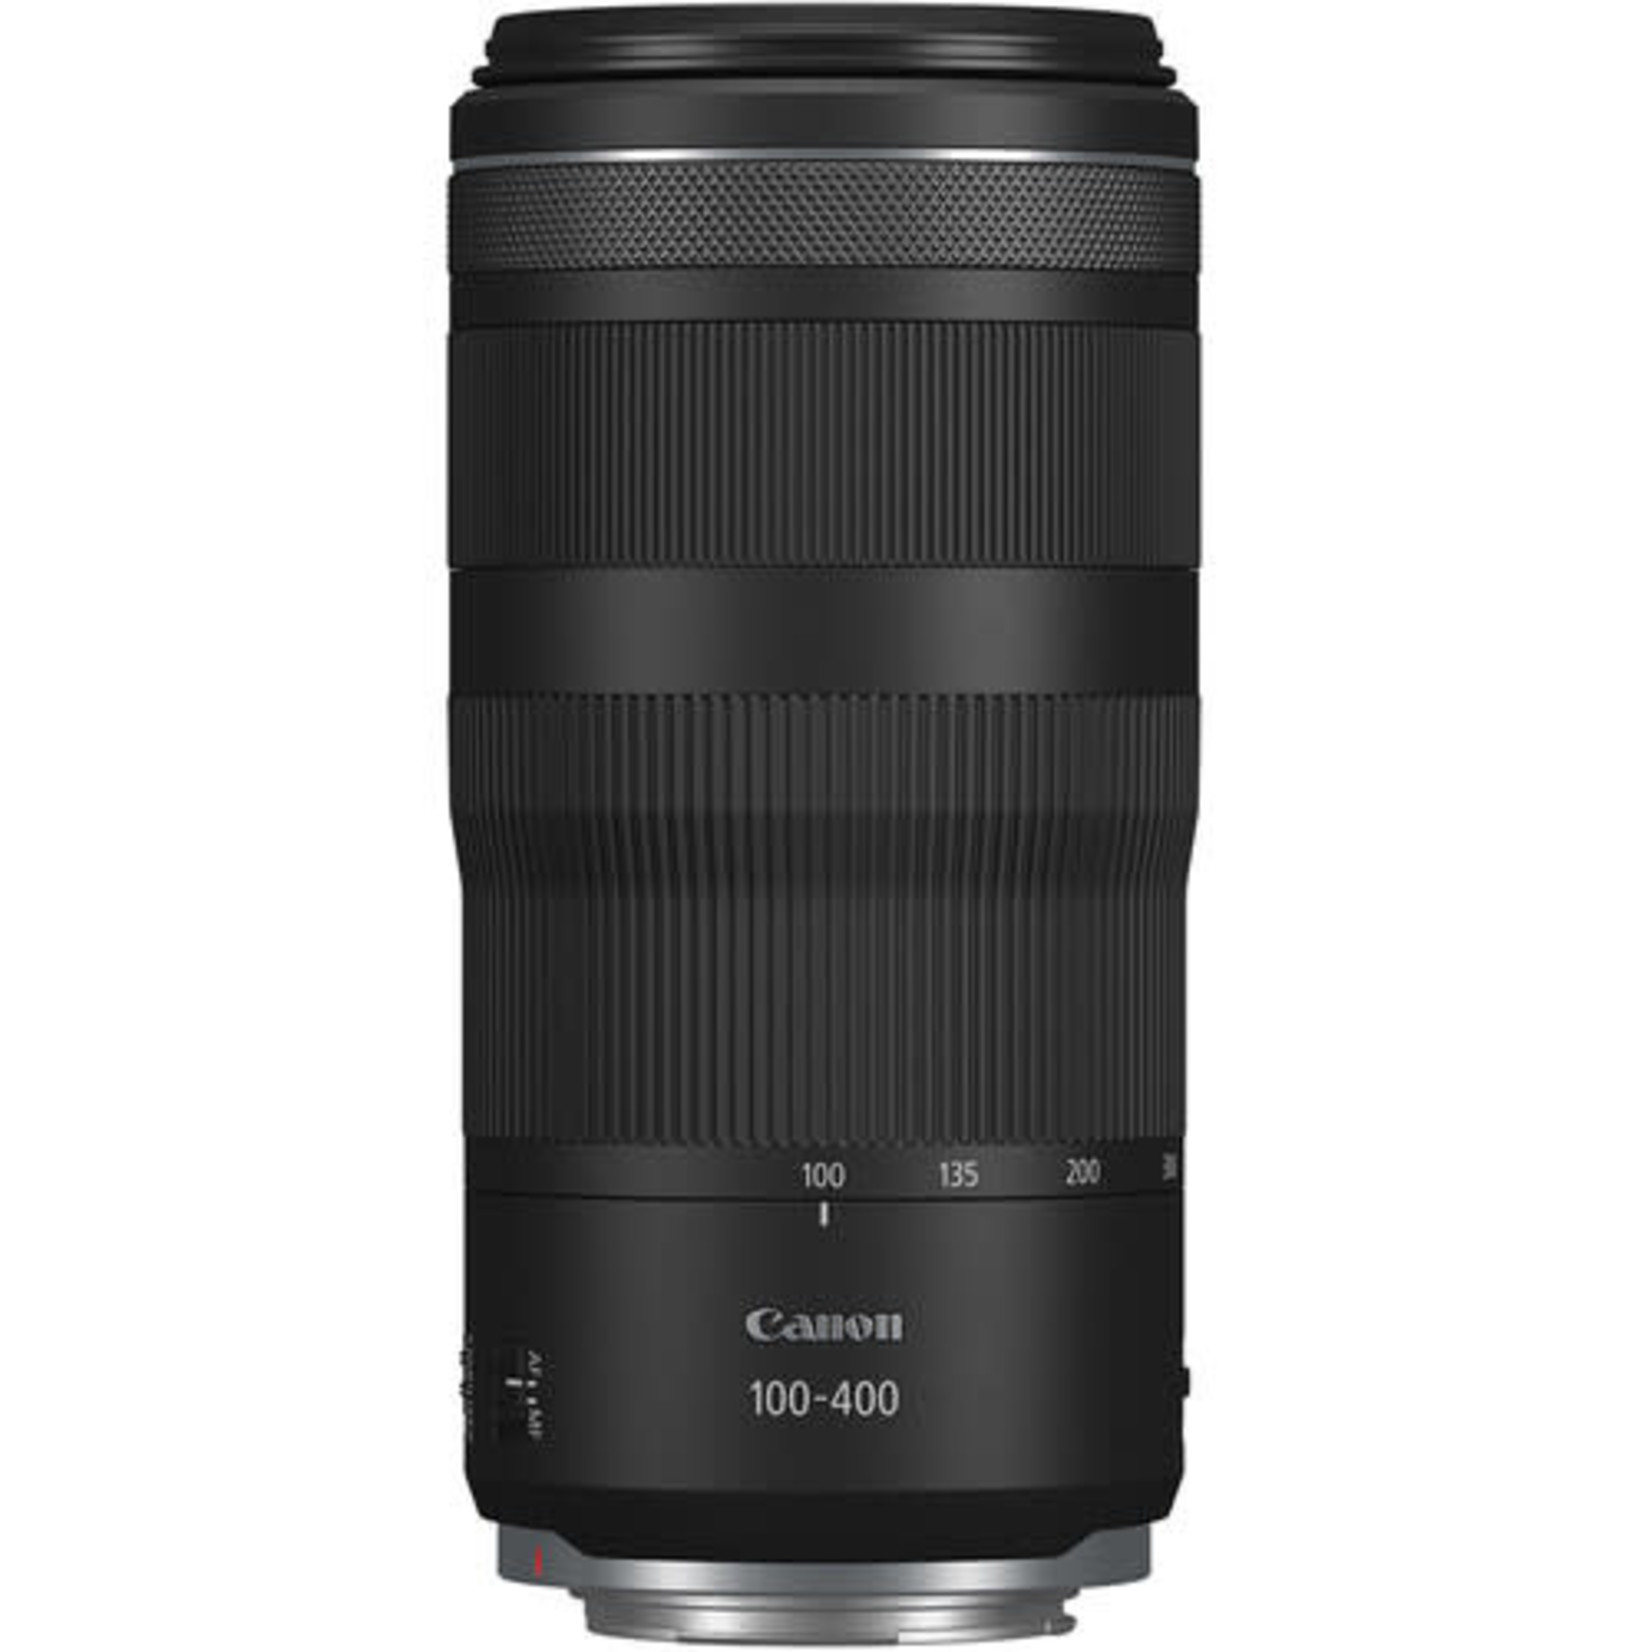 Canon Canon RF 100-400mm f/5.6-8 IS USM Lens